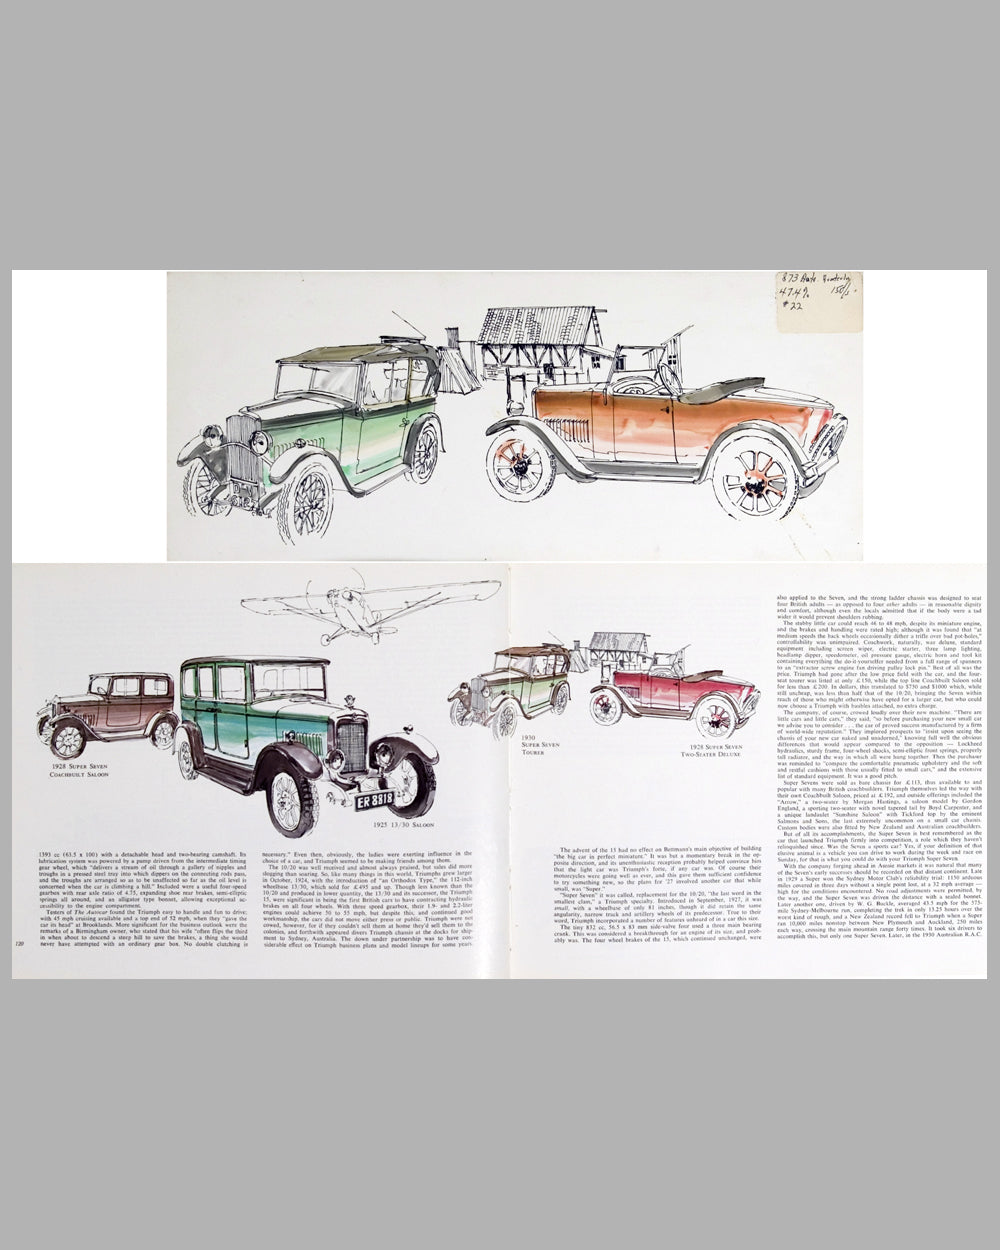 1928/30 Triumph illustrations by Harvey Winn, USA, 1972, black ink and watercolor paintings